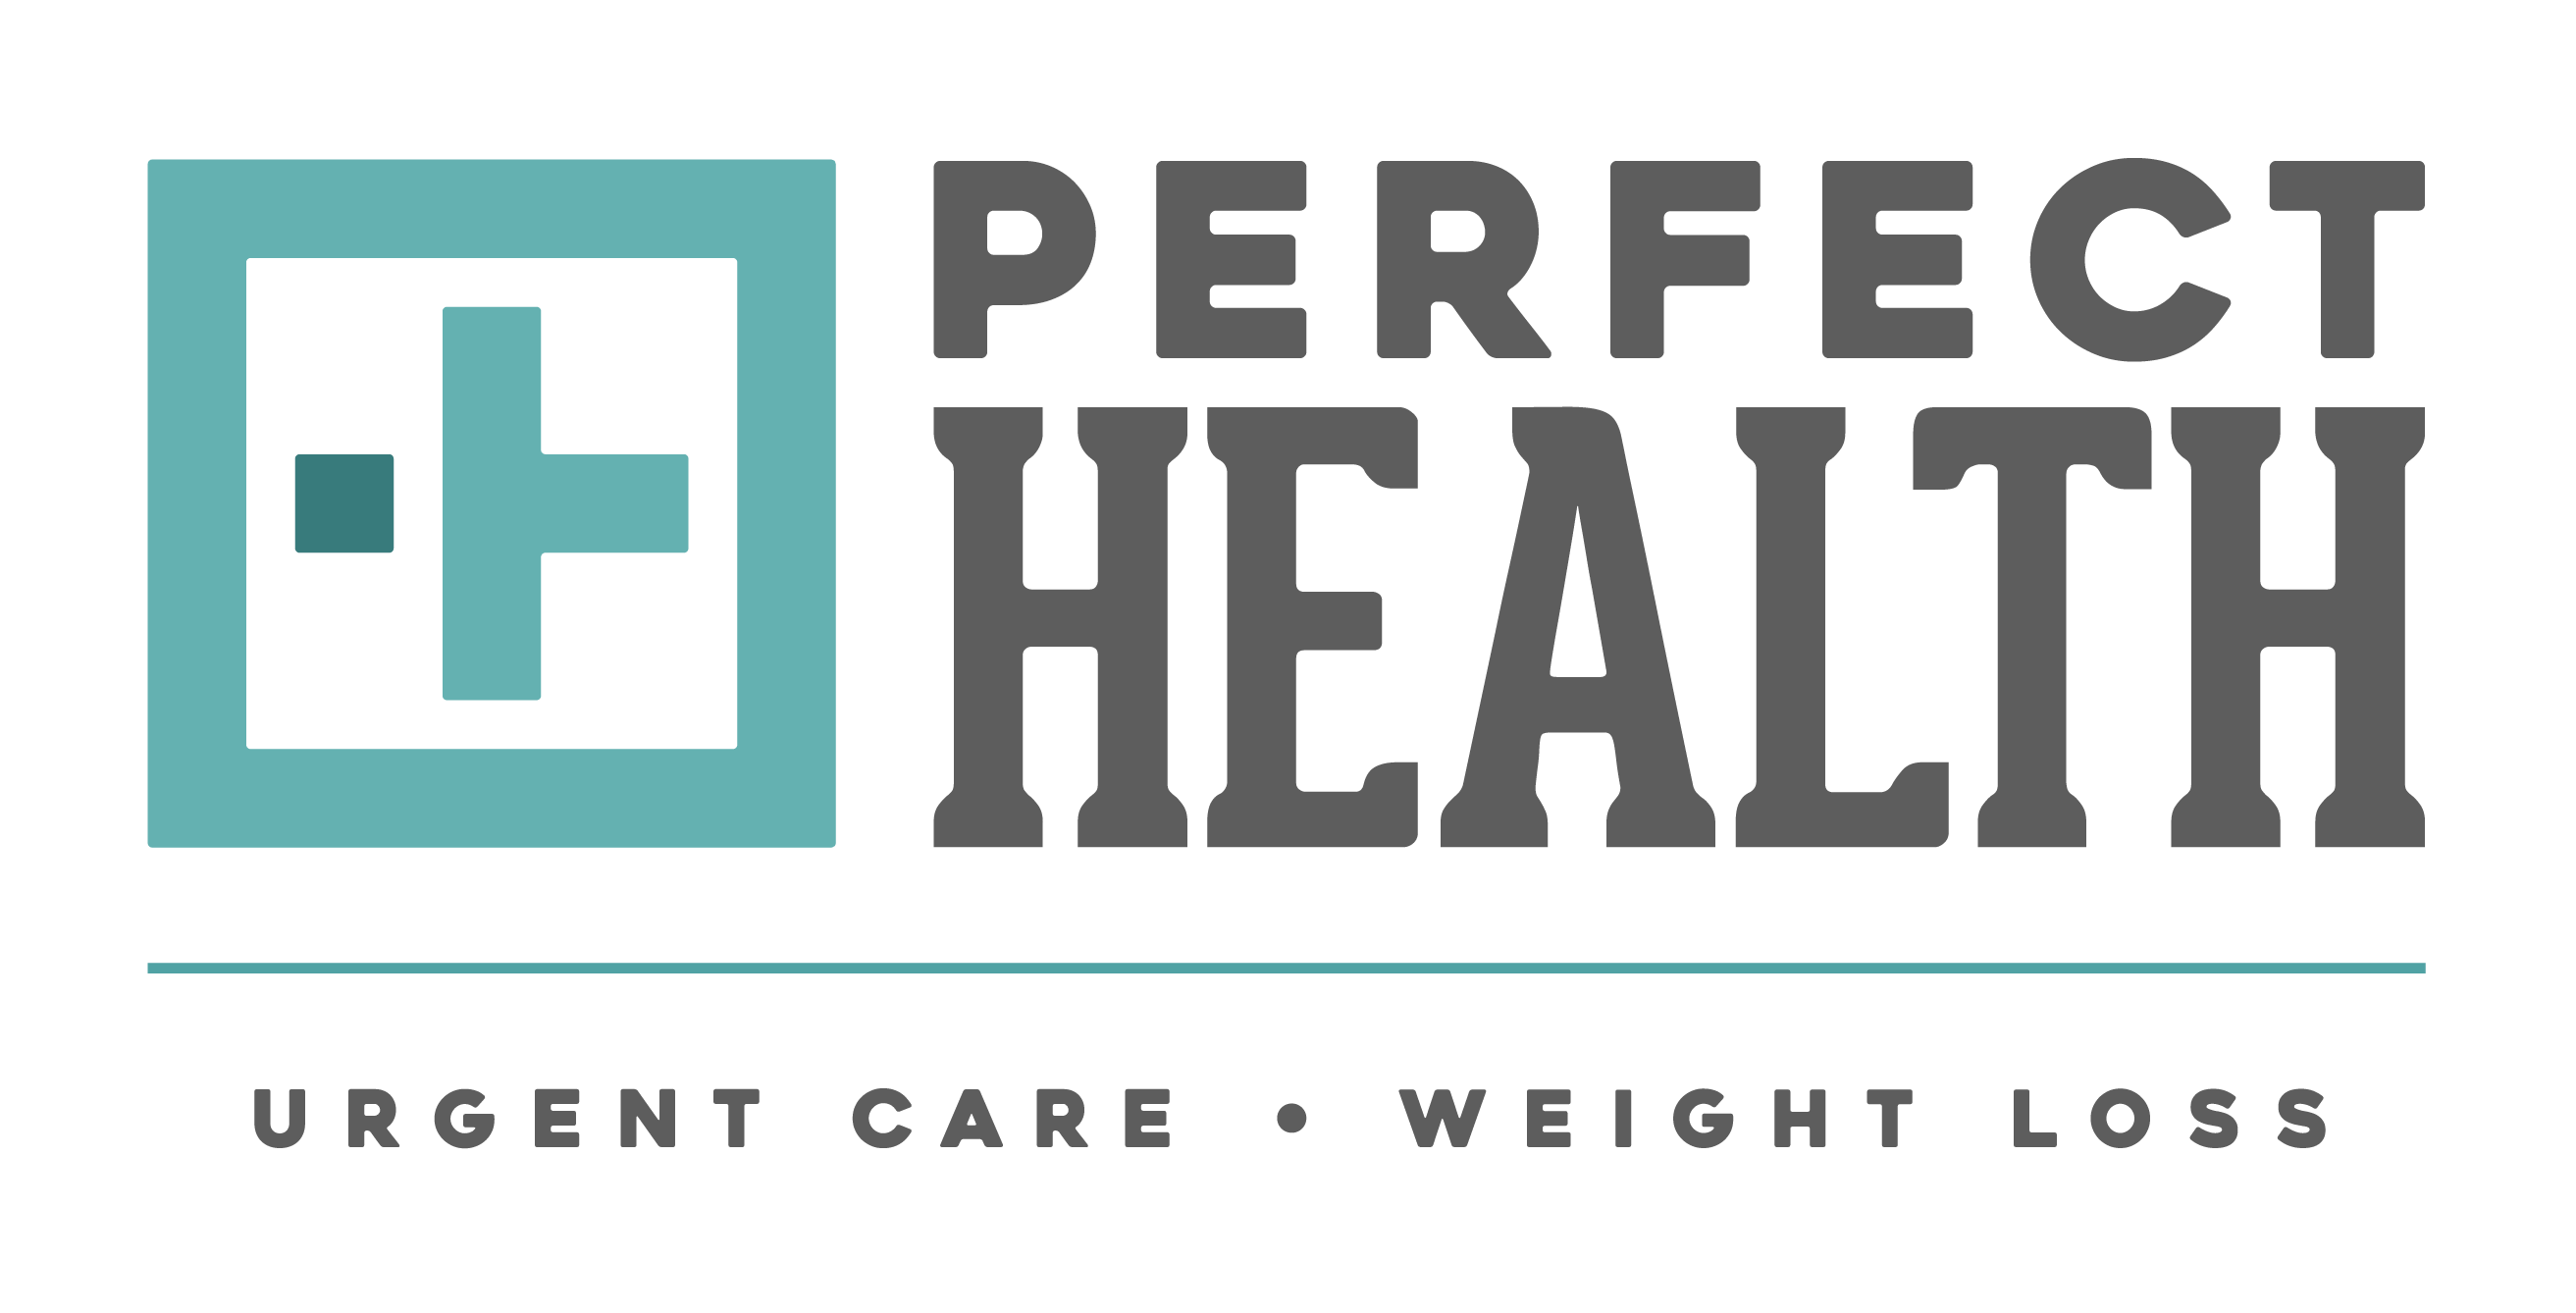 Urgent Care And Weight Loss